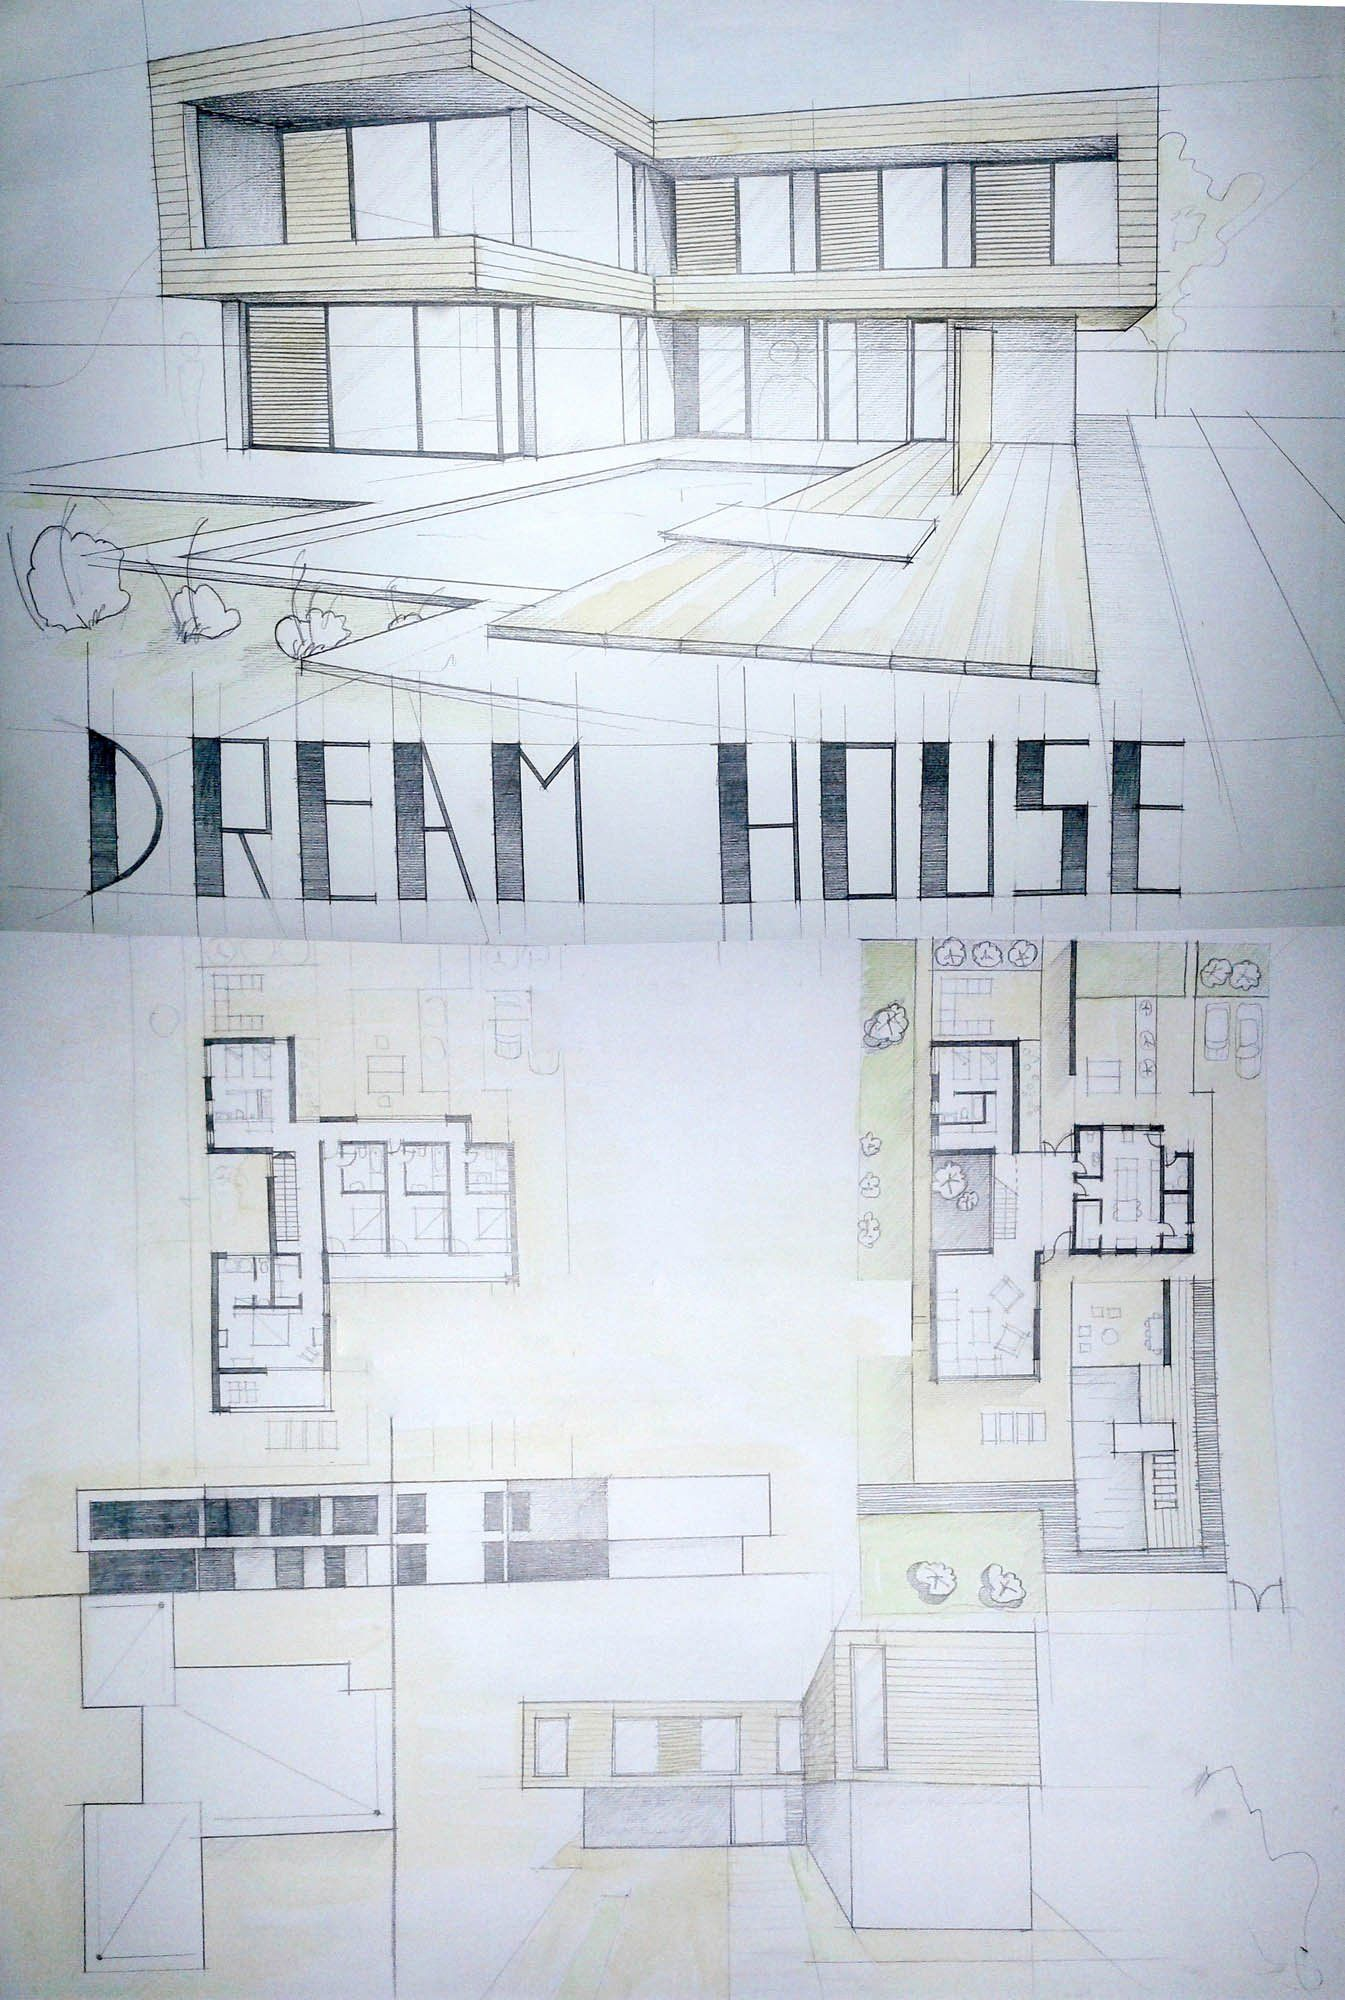 Modern House Perspective Drawing Images Fresh Modern House Drawing Perspective Floor Plans Design Dream House Drawing Drawing House Plans Architecture House